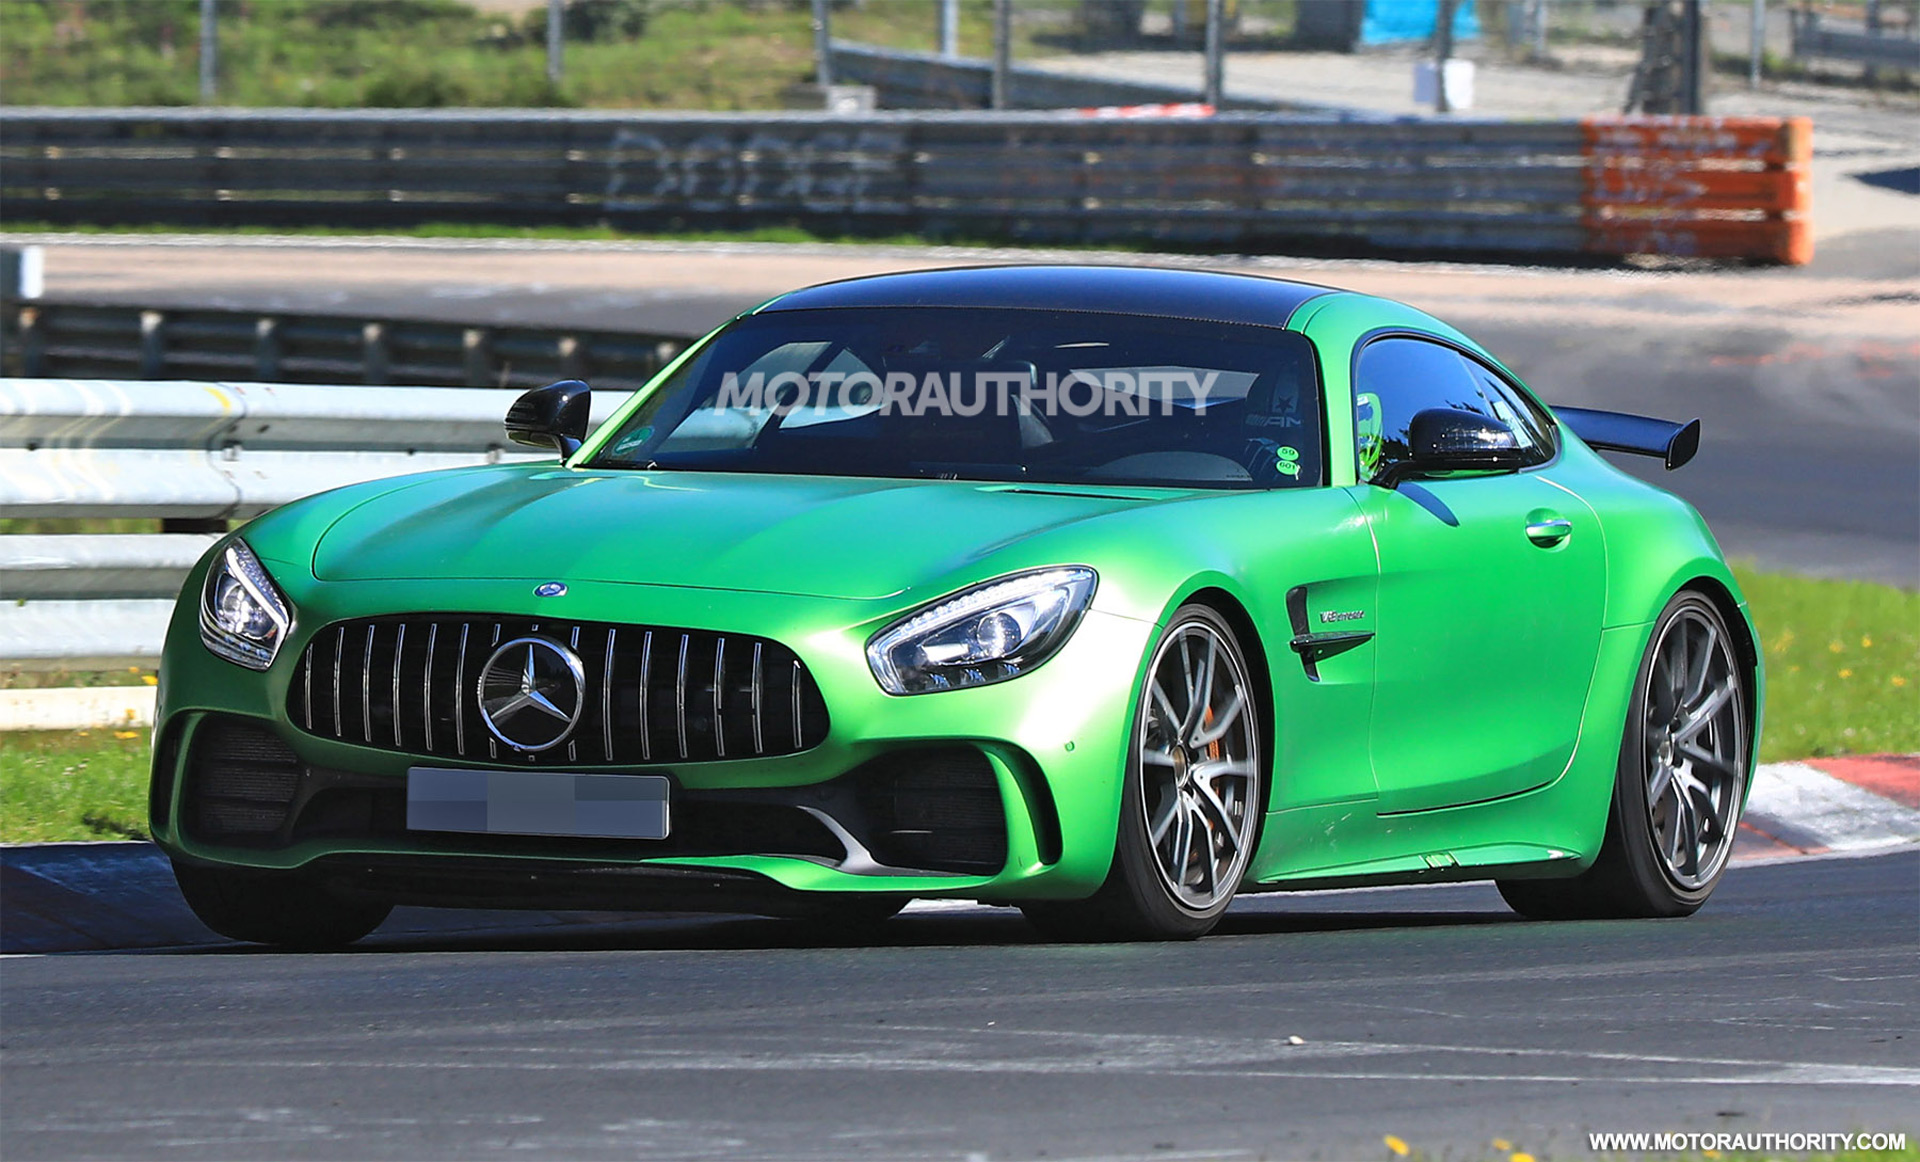 2019 Mercedes Amg Gt Black Series Spy Shots And Video